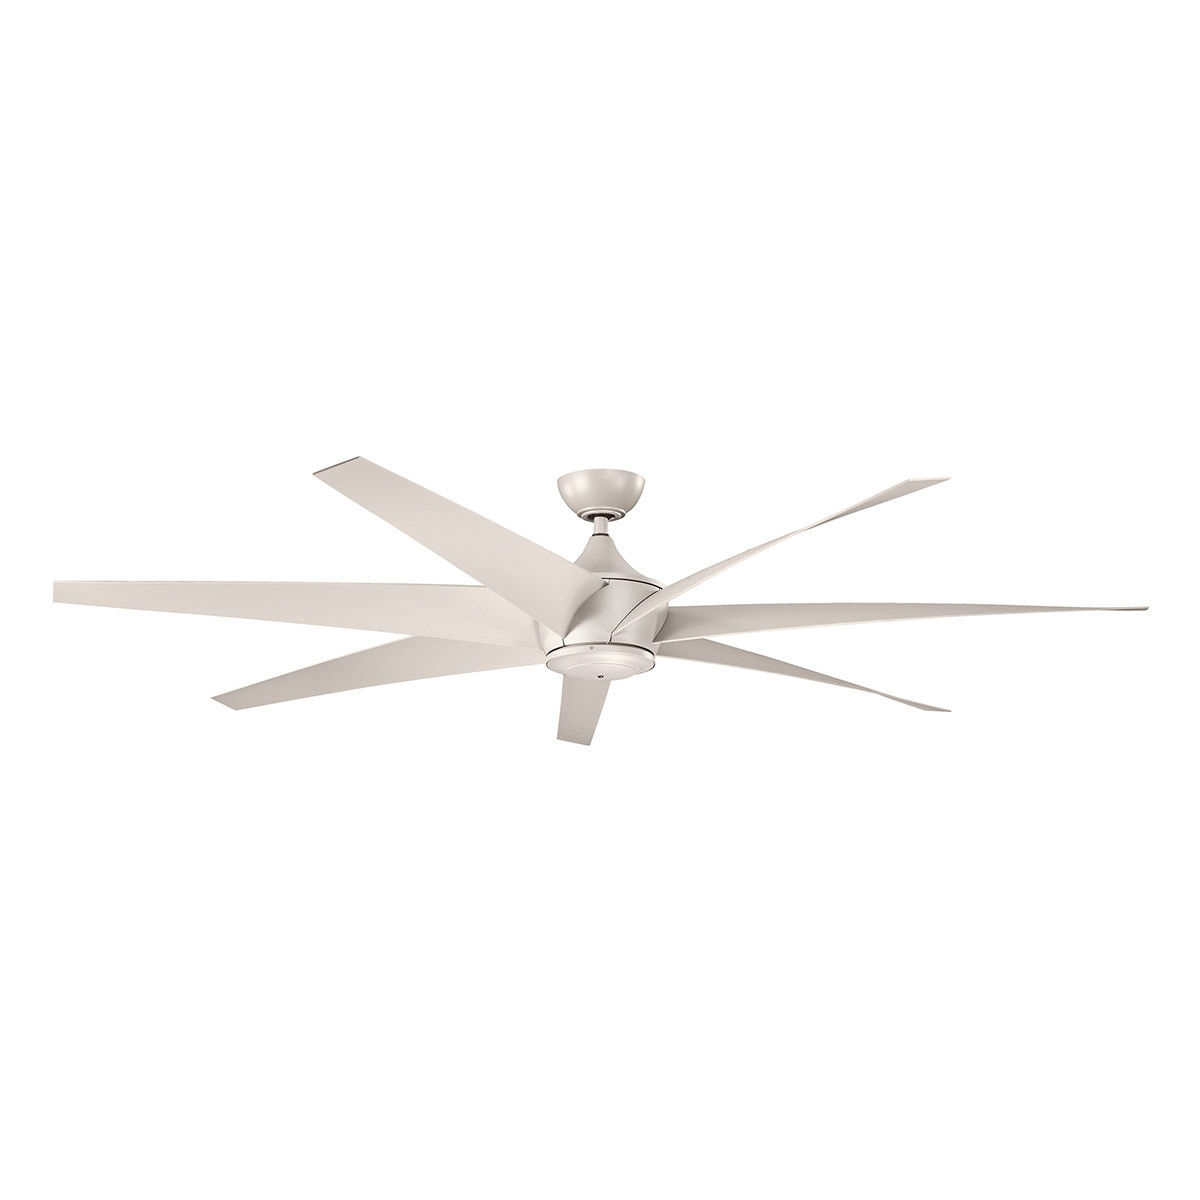 Newest Kichler 310115Ans Lehr 80 Inch Antique Satin Silver Outdoor Ceiling With Regard To Outdoor Ceiling Fans At Kichler (View 11 of 20)